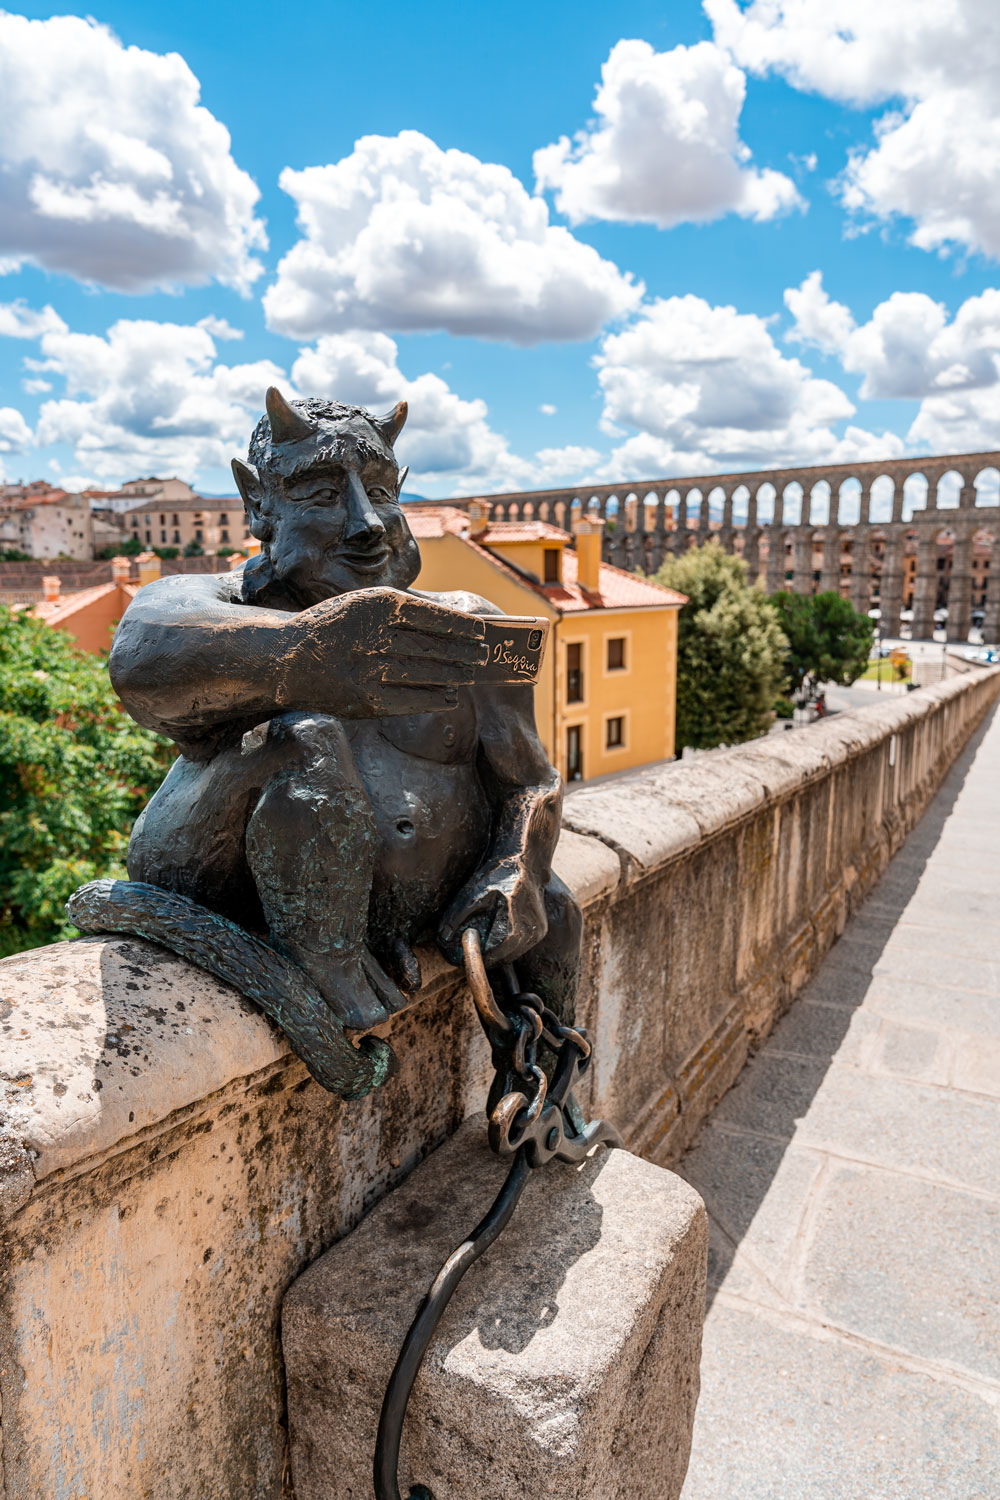 Segovia in a Day - Statue of Devil taking selfie near the Aqueduct